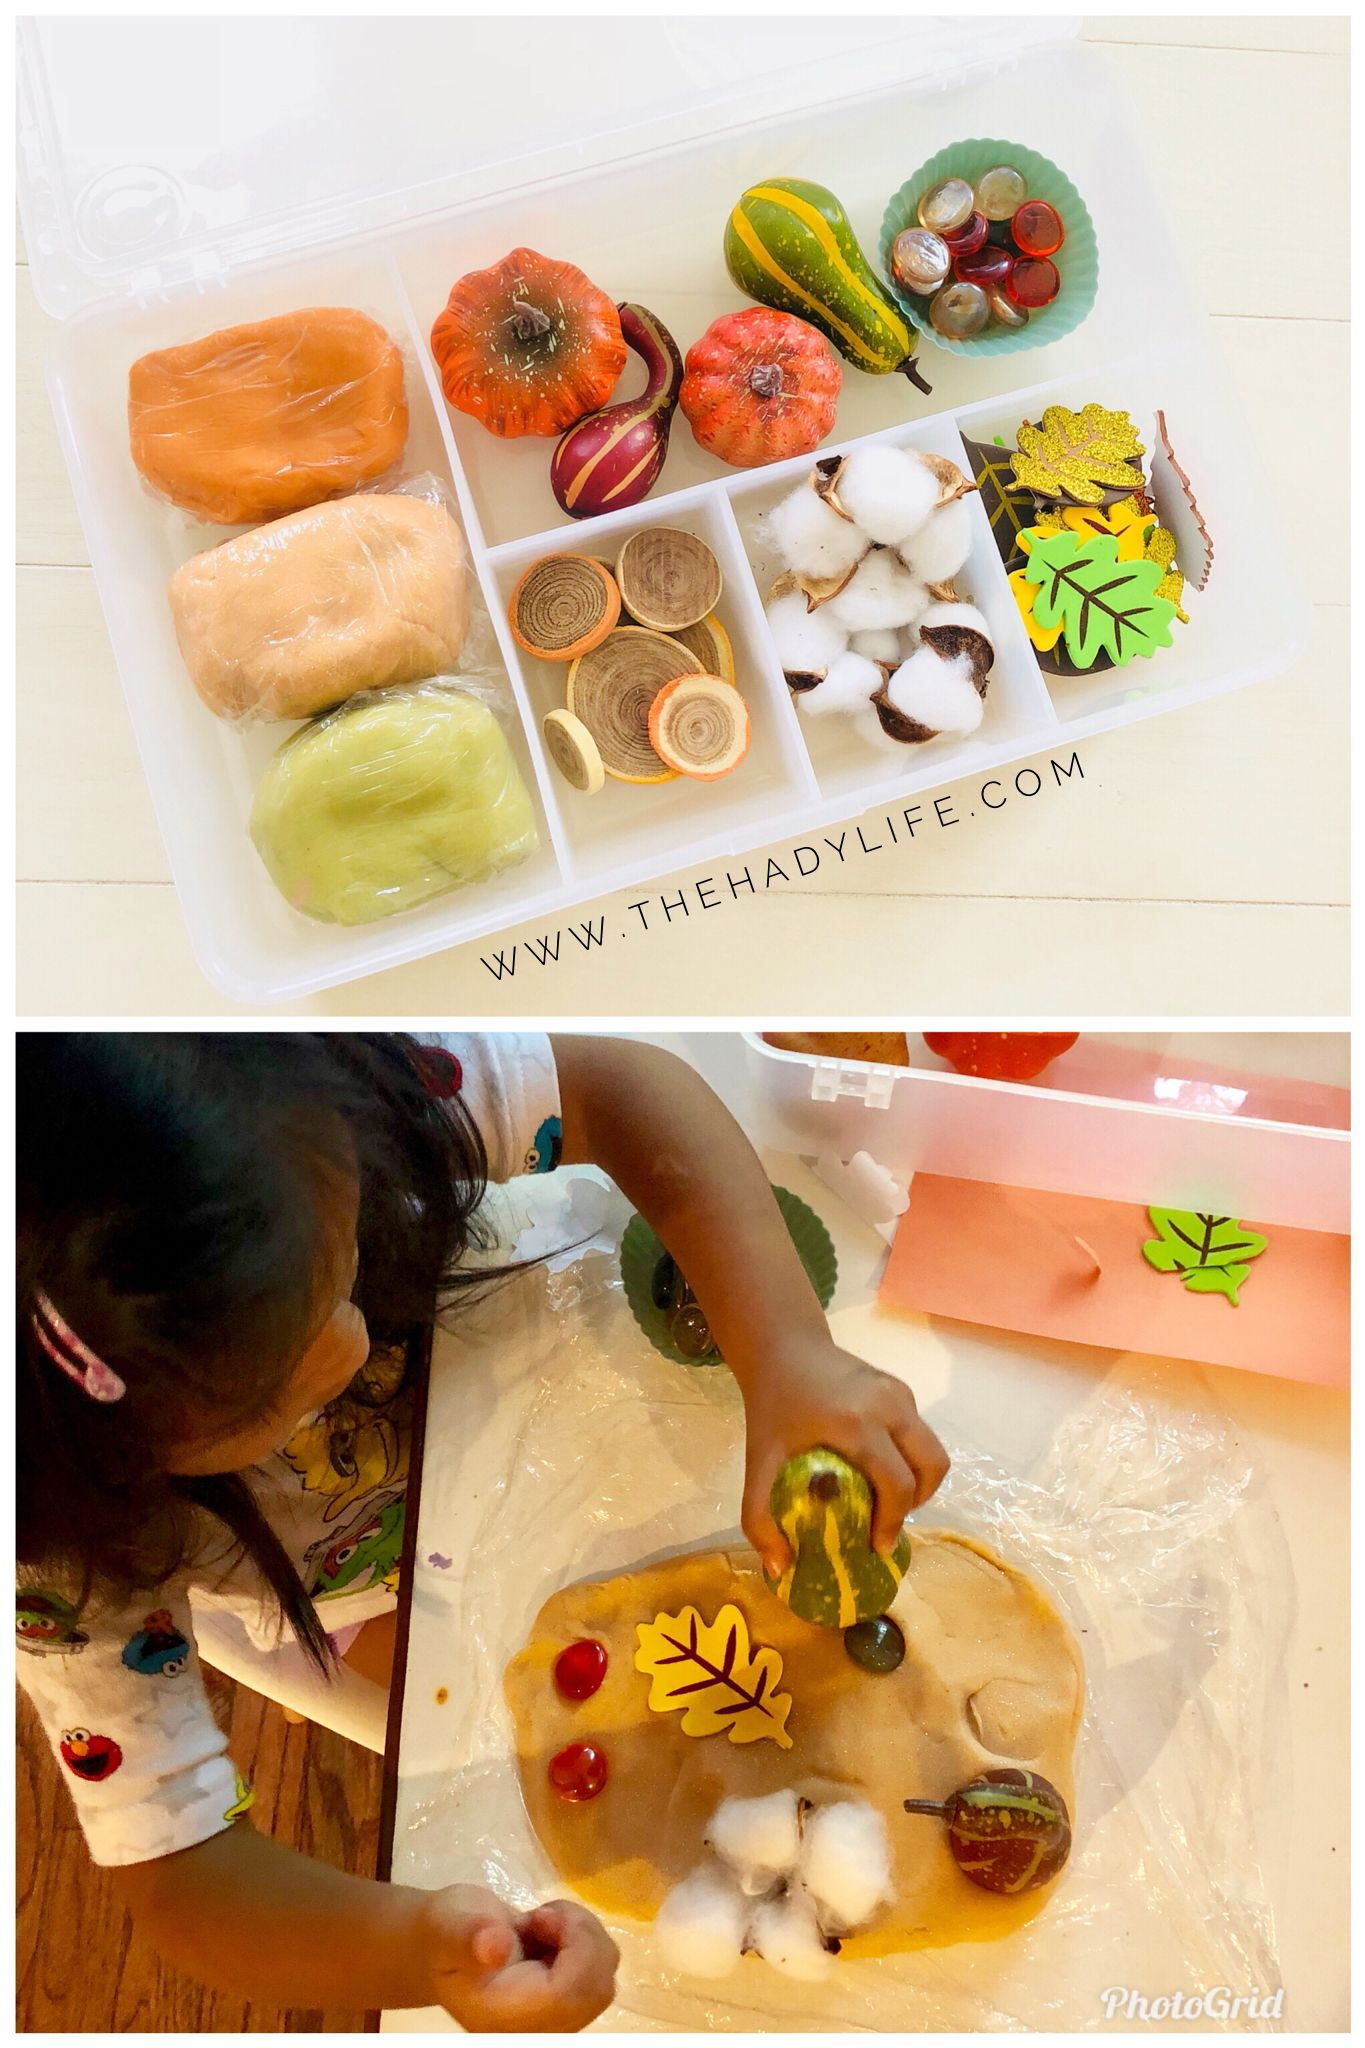 Sensory play play dough kit for kids. Encourages